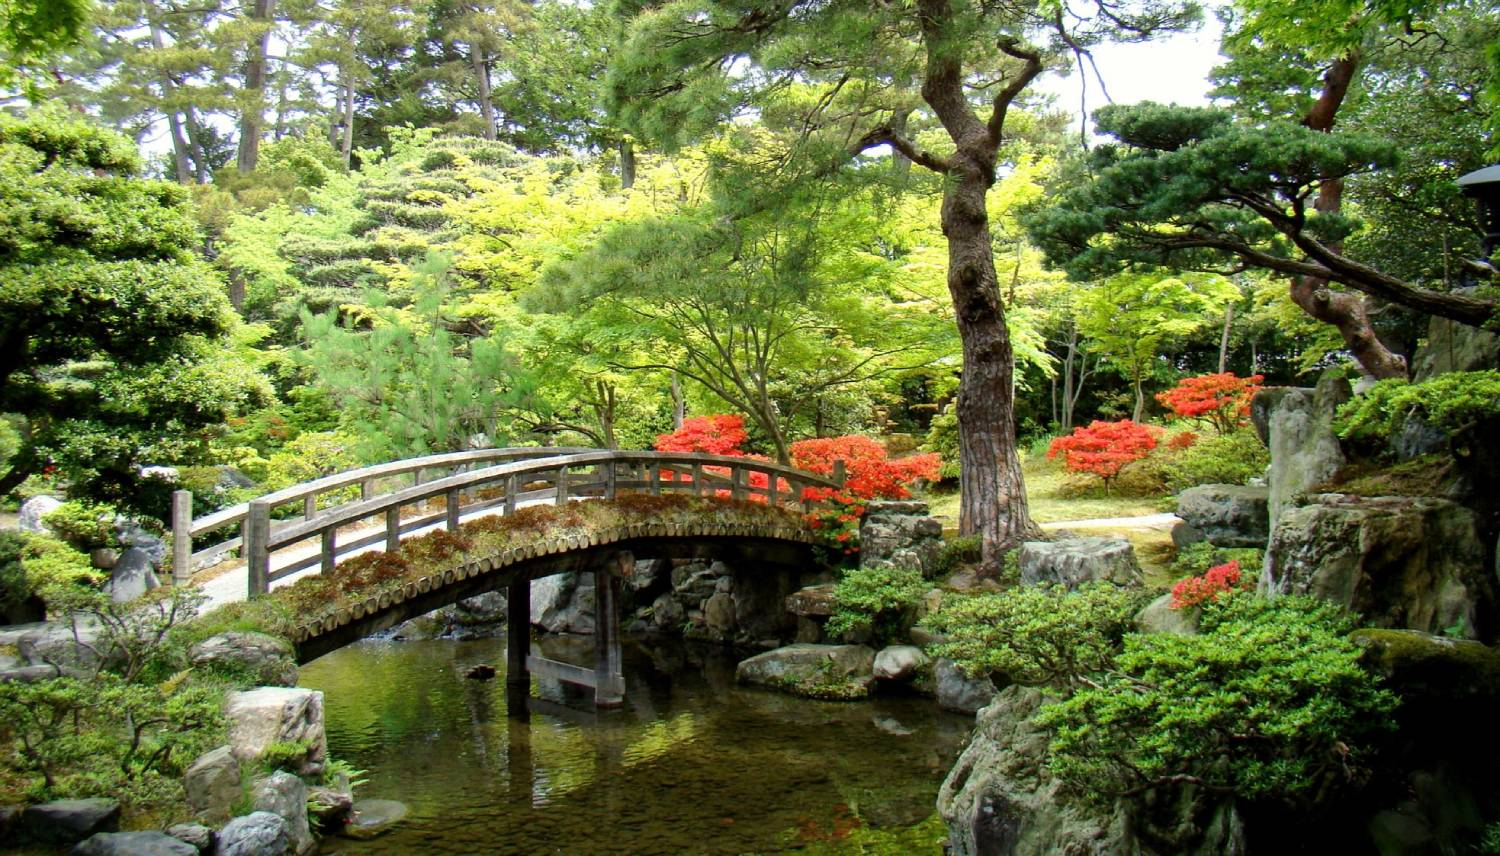 Kyoto Imperial Palace - Things To Do In Kyoto